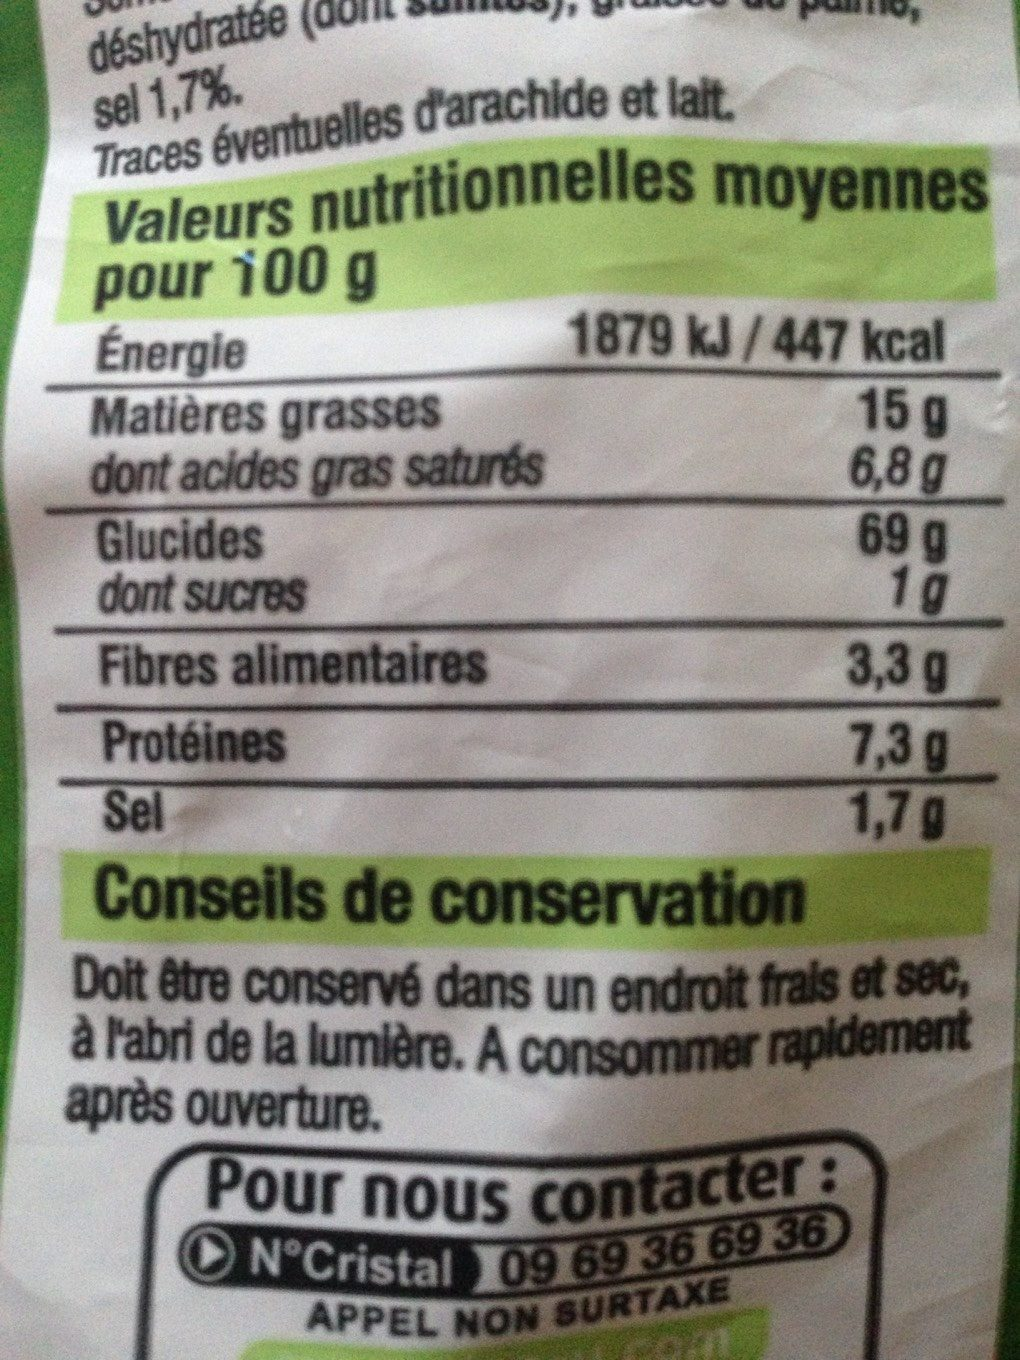 Souffles aperitif frites salee - Nutrition facts